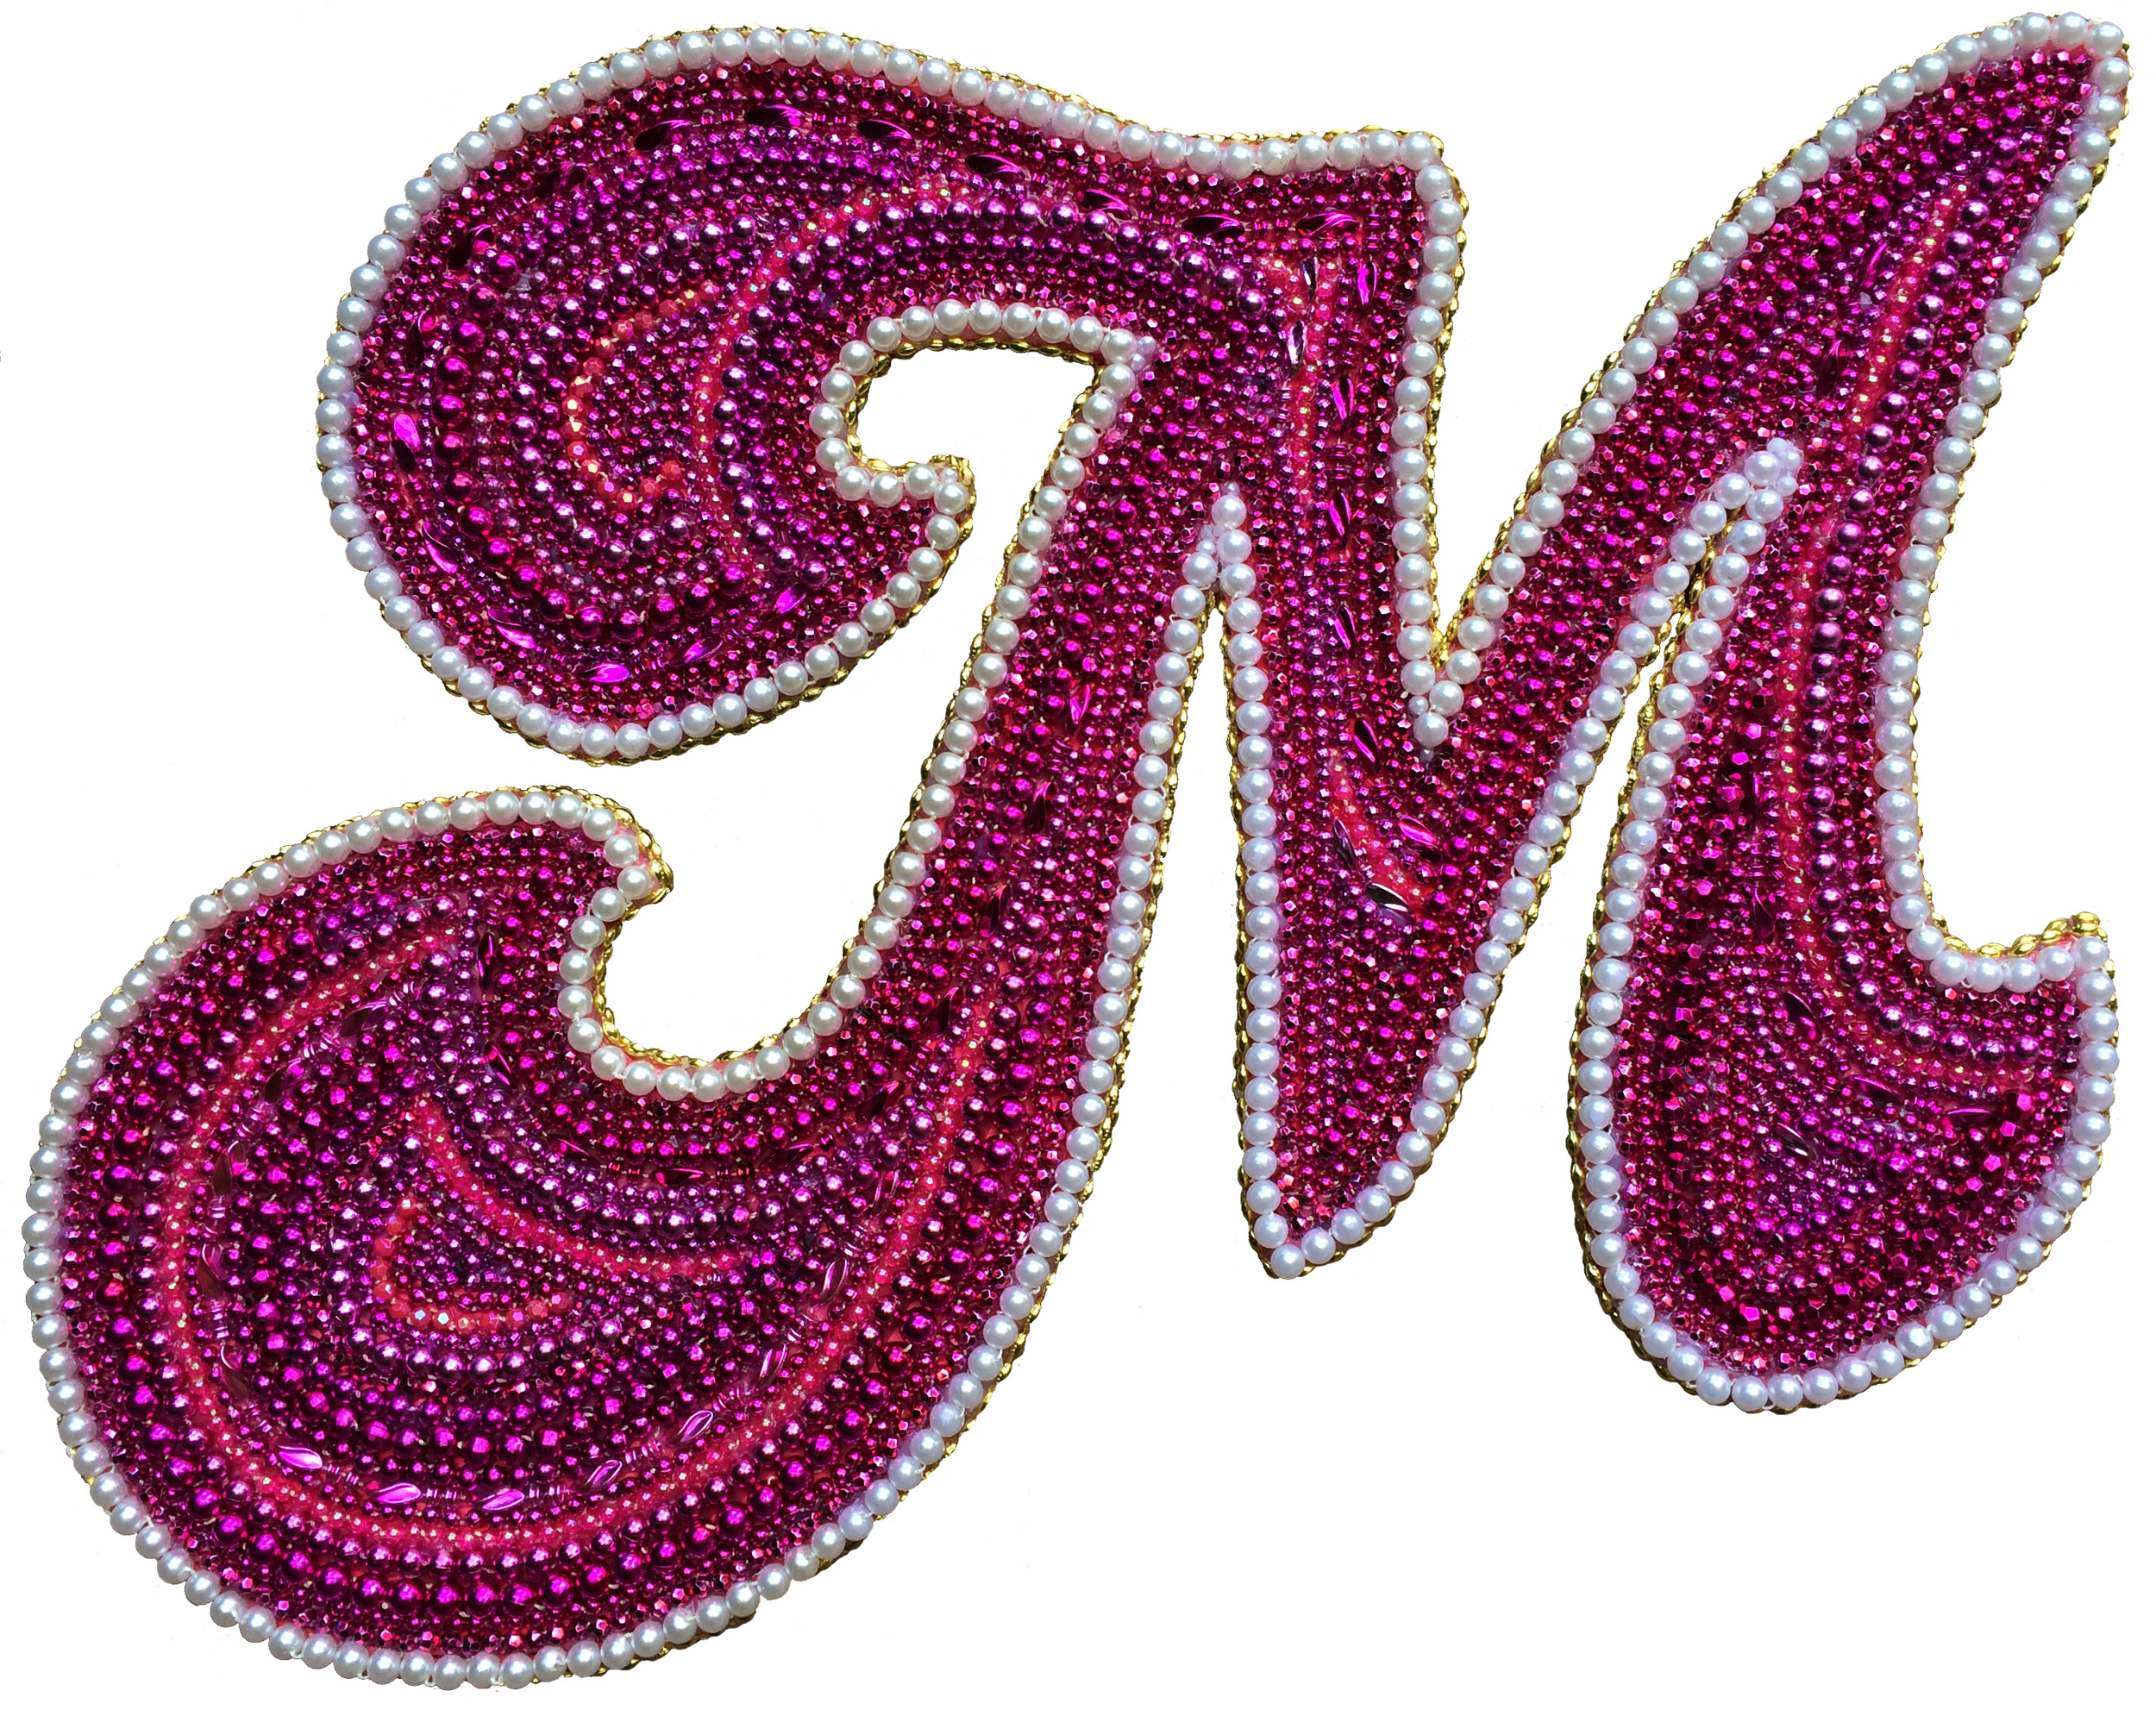 M is for marie